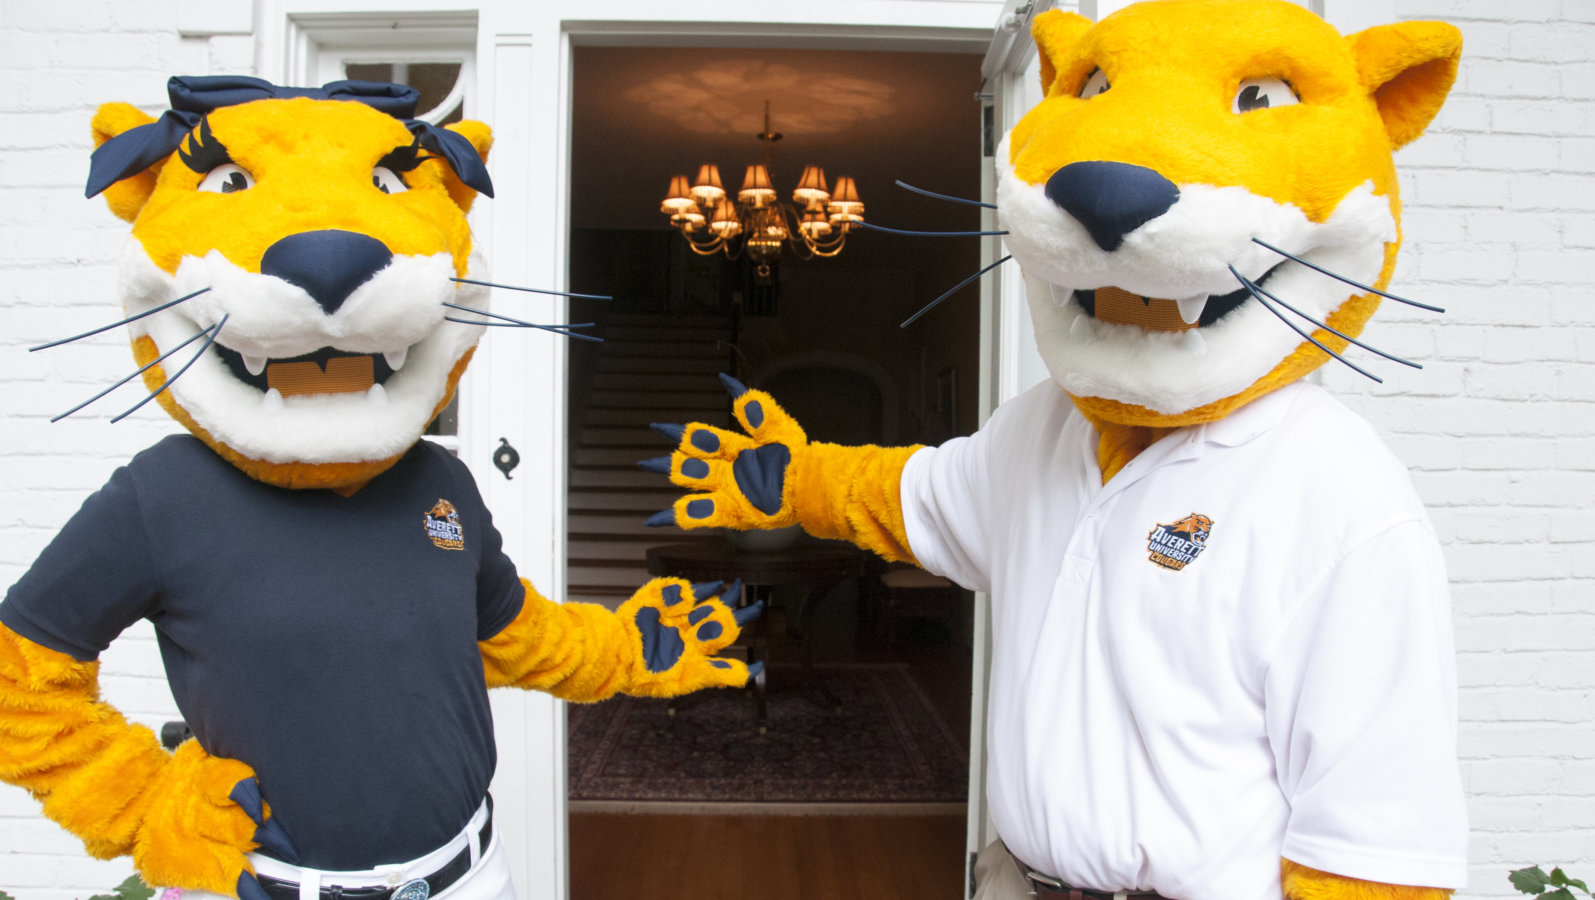 averett mascots welcoming new students